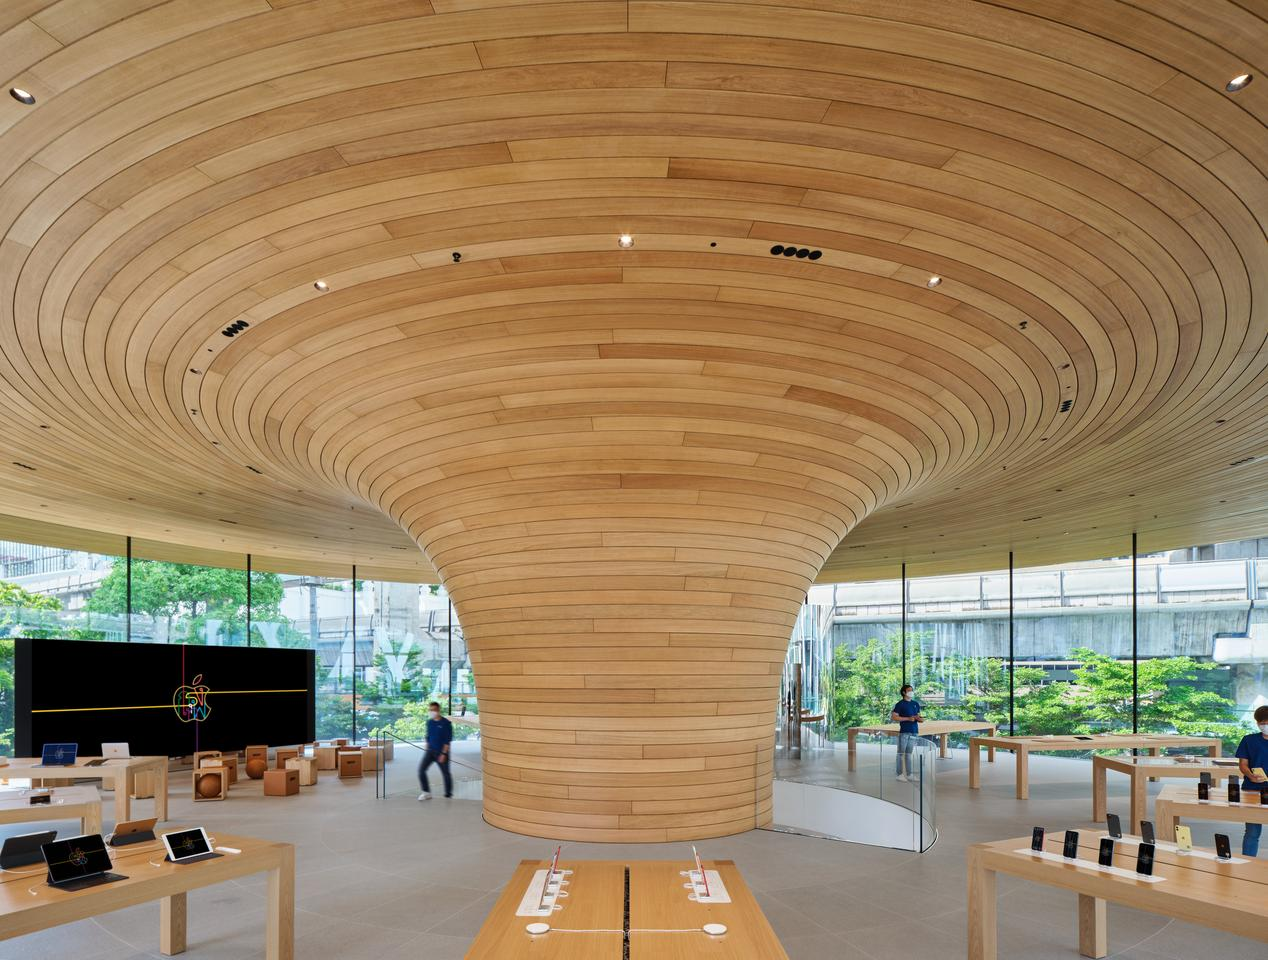 Apple Central World's timber centerpiece is made up of 1,461 oak slats